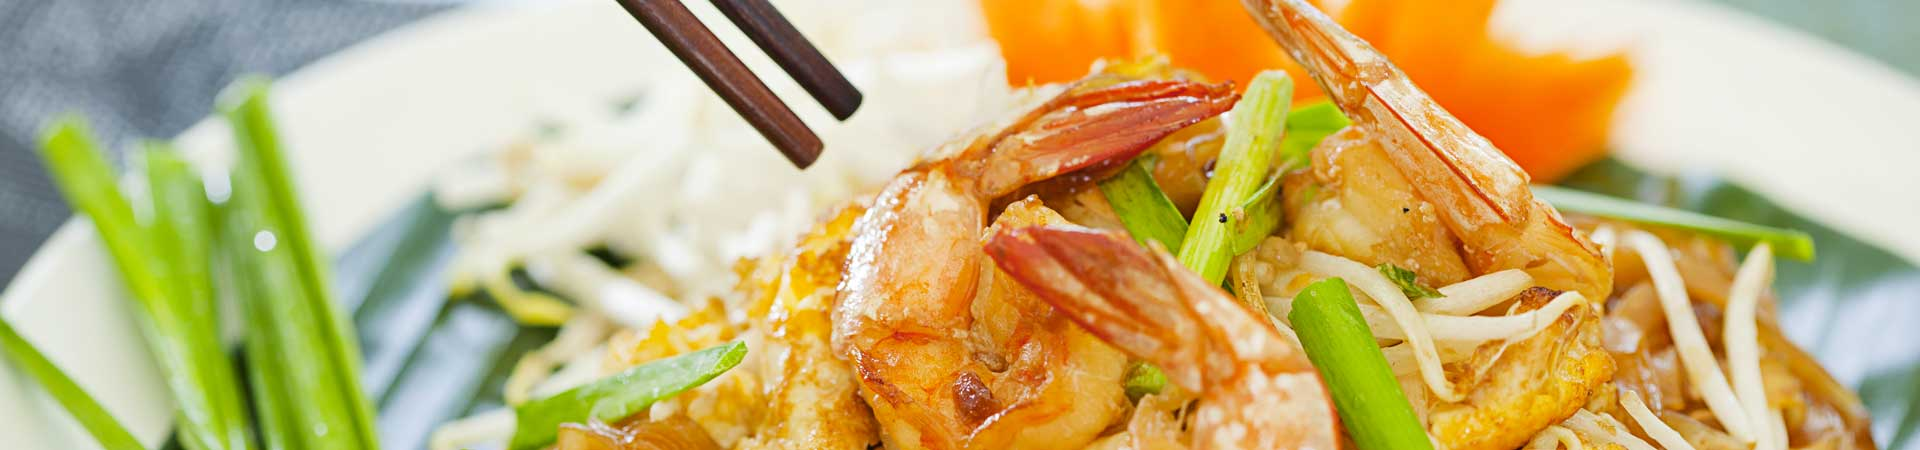 https://www.goodmorningtenerife.com/wp-content/uploads/2018/01/02_taste-chinese-food-1920x450-good-morning-tenerife.jpg